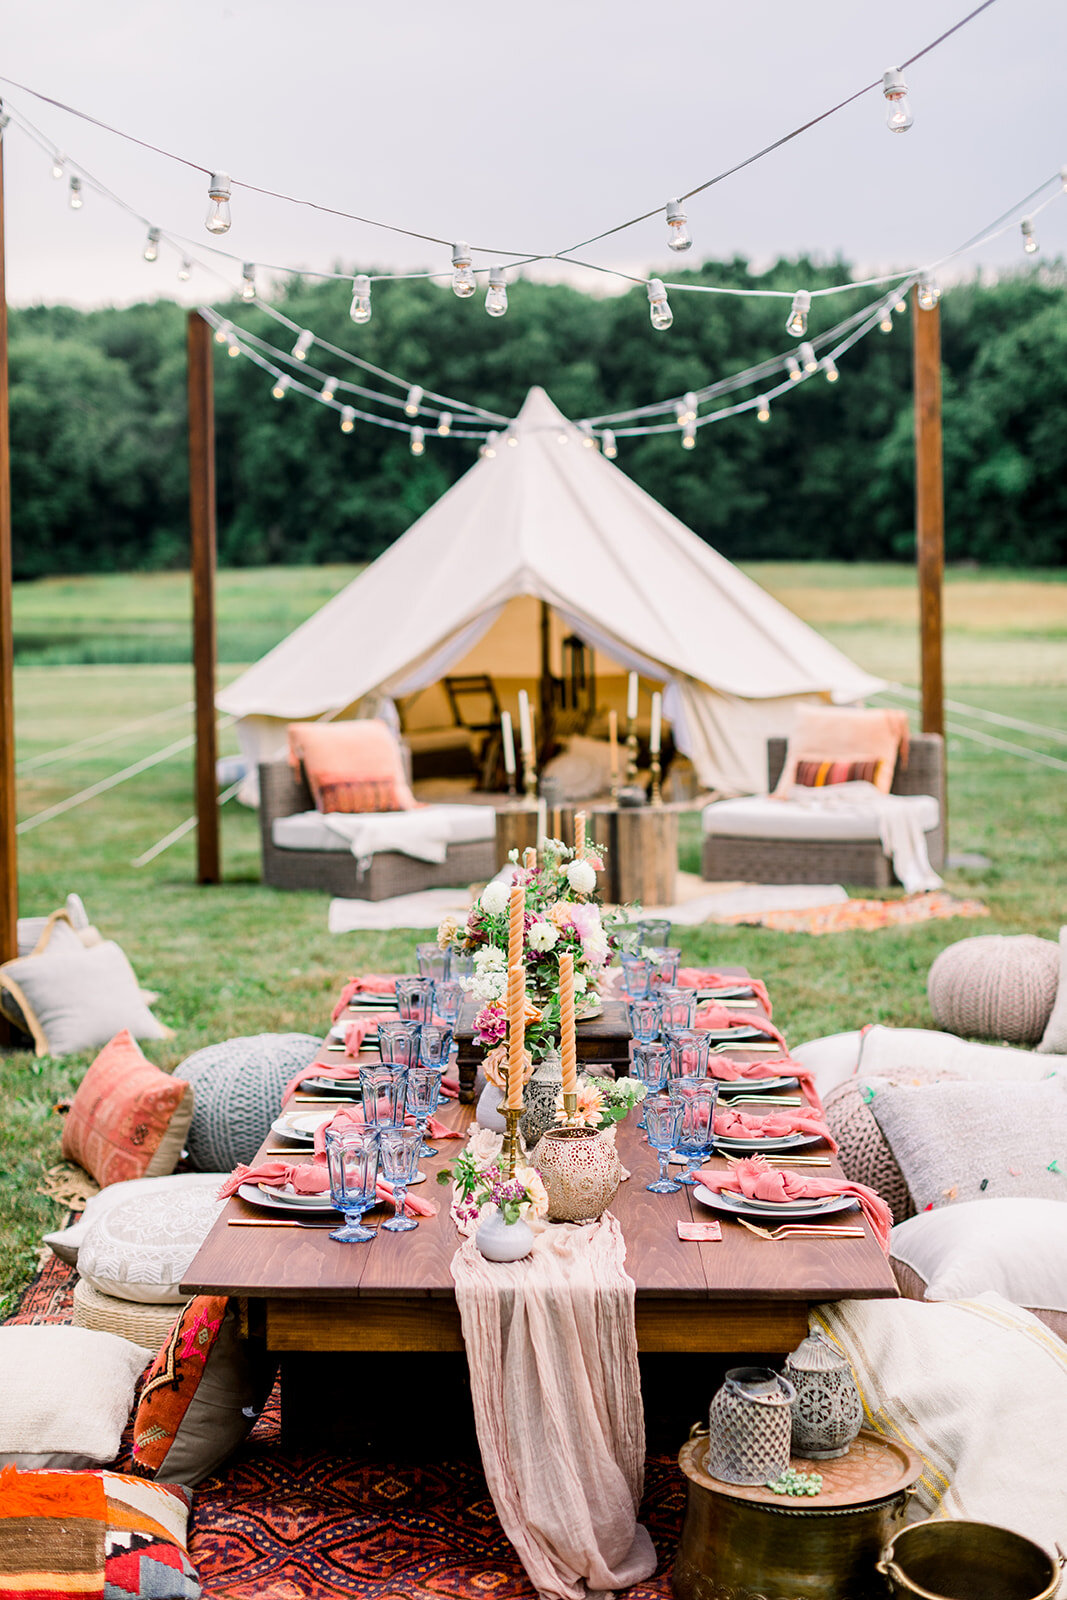 Connecticut Wedding Planner Designer Glamping Style Intimate Wedding At Maple Lane Farms In Preston Connecticut